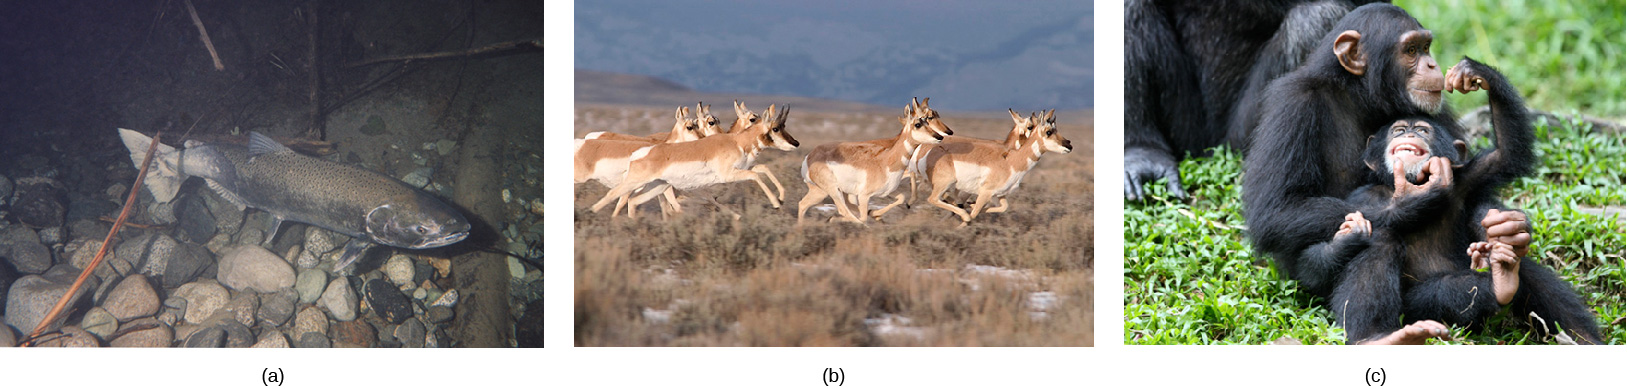 Photo a shows a salmon swimming. Photo b shows pronghorn antelope running on a plain. Photo c shows chimpanzees. Photo (b) shows pronghorn antelope running on a plain. Photo (c) shows chimpanzees.